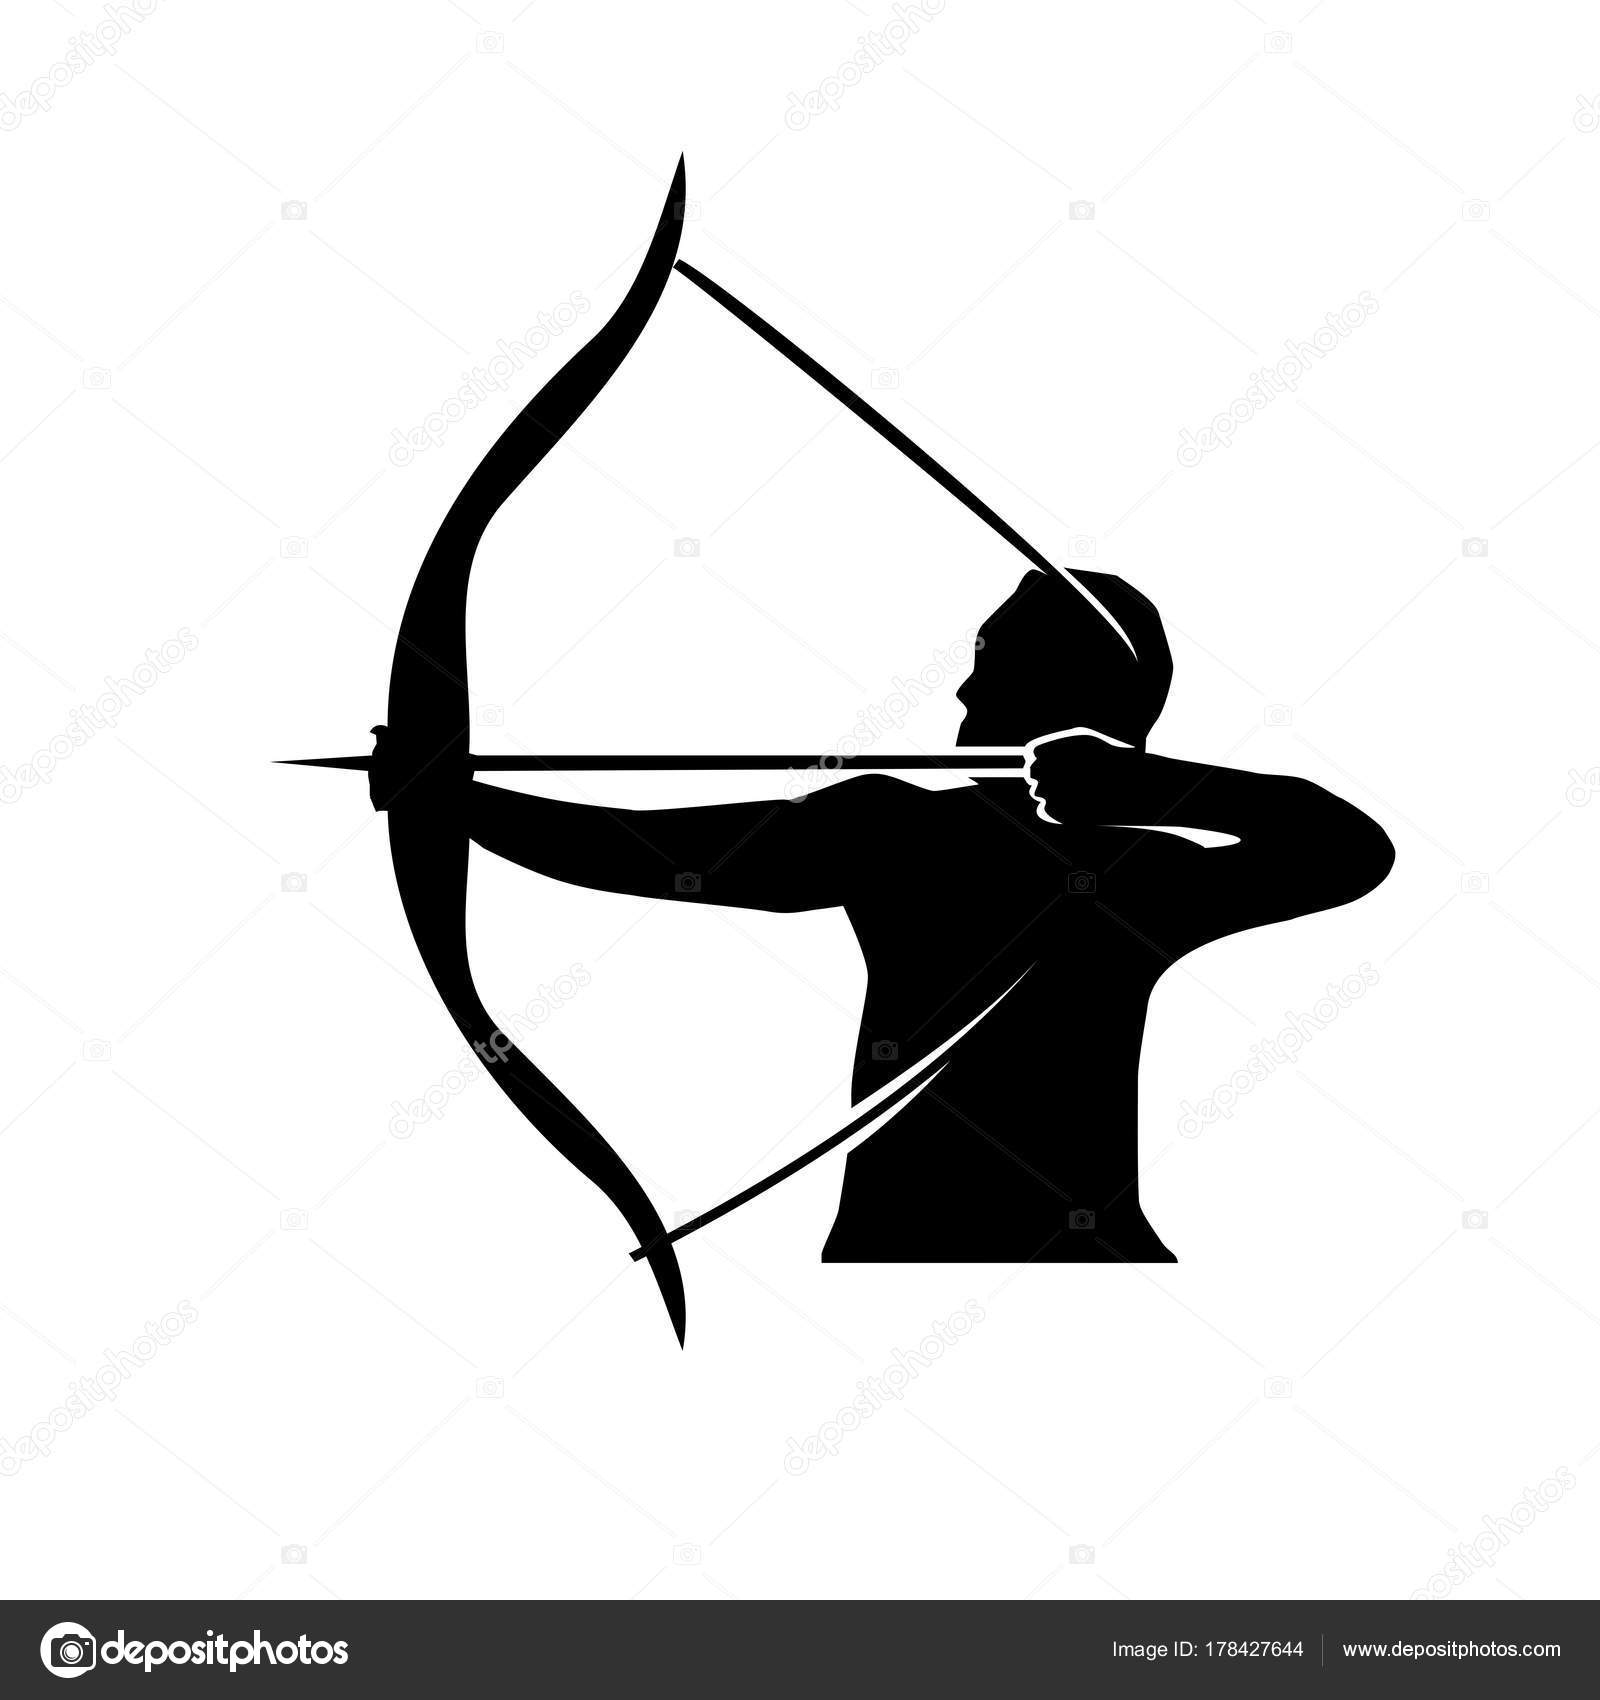 arrow Bow silhouette and